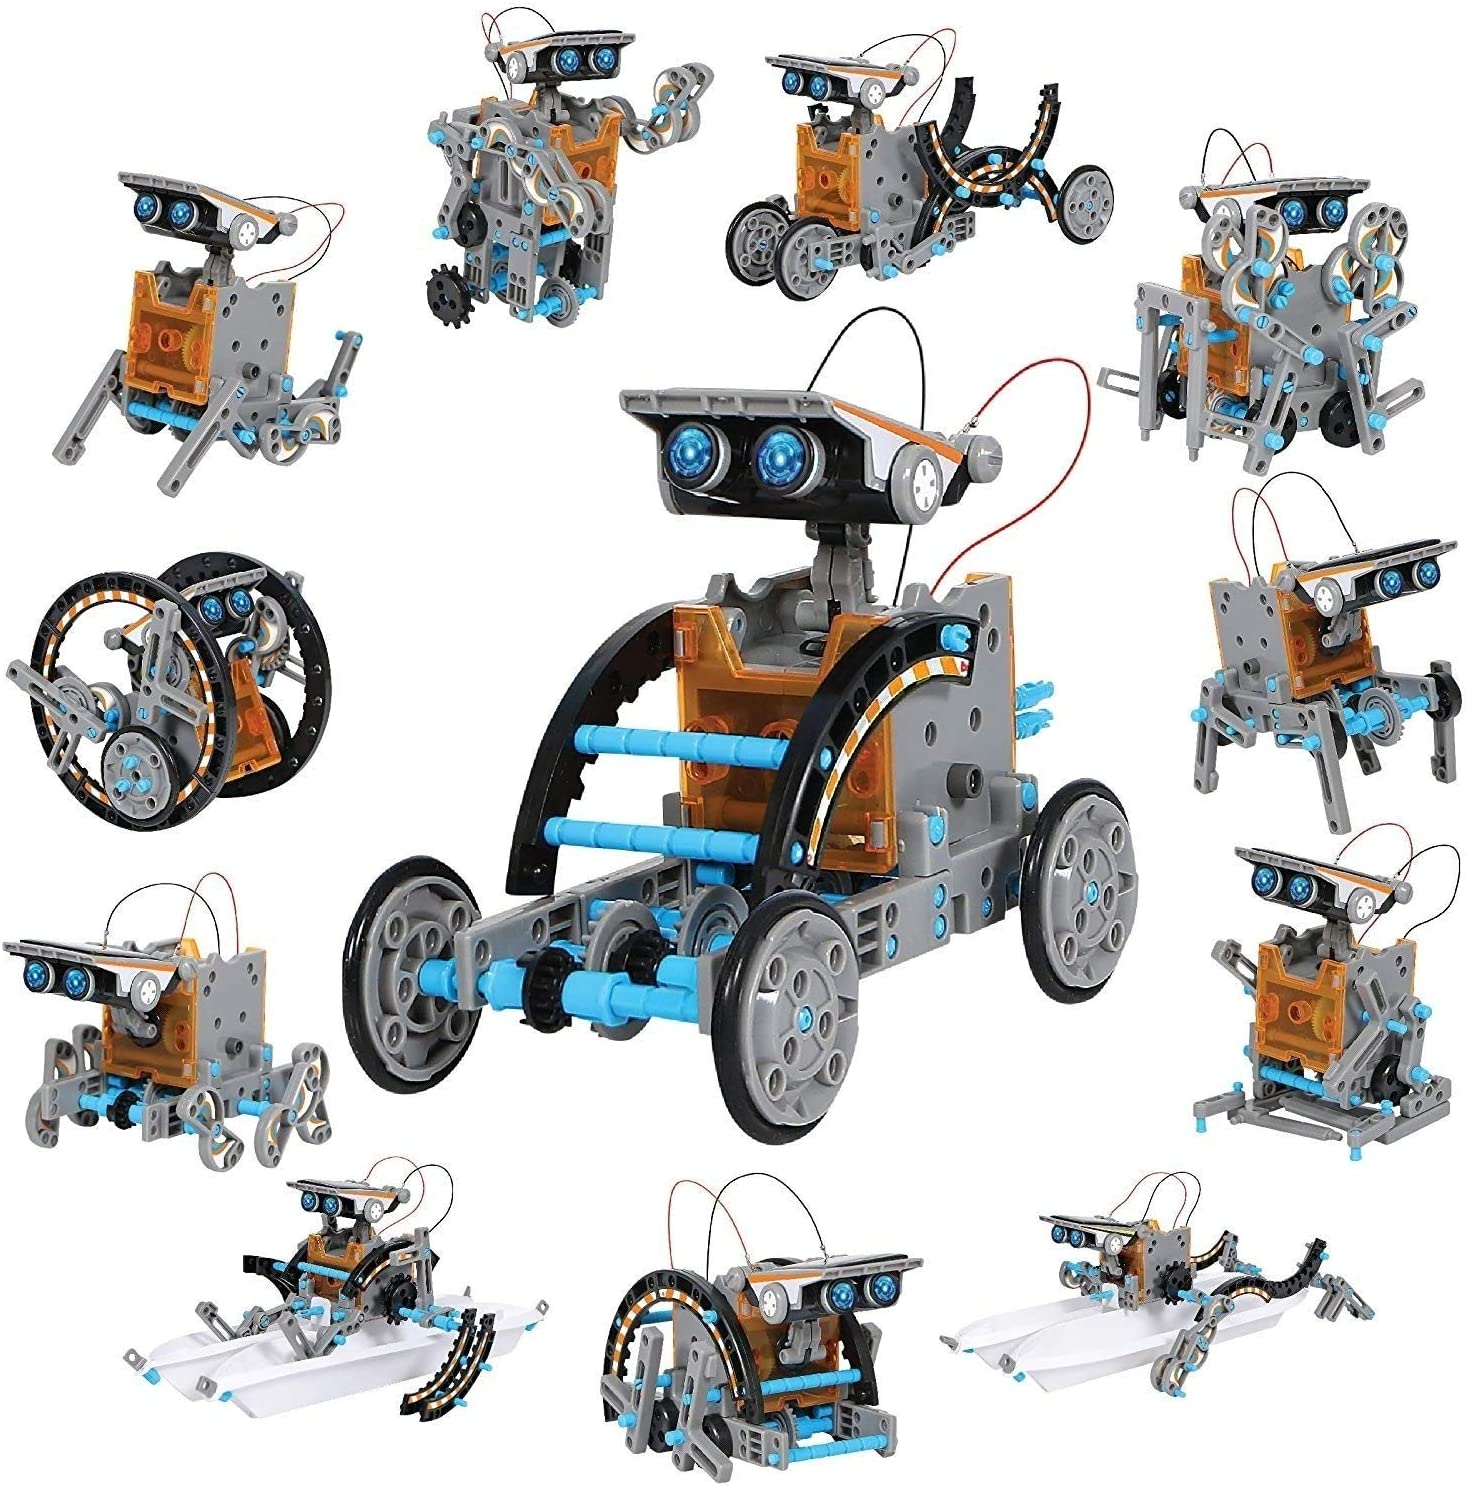 Weekly update Unknown1 Toy Max 89% OFF Solar Set Vehicle Construction